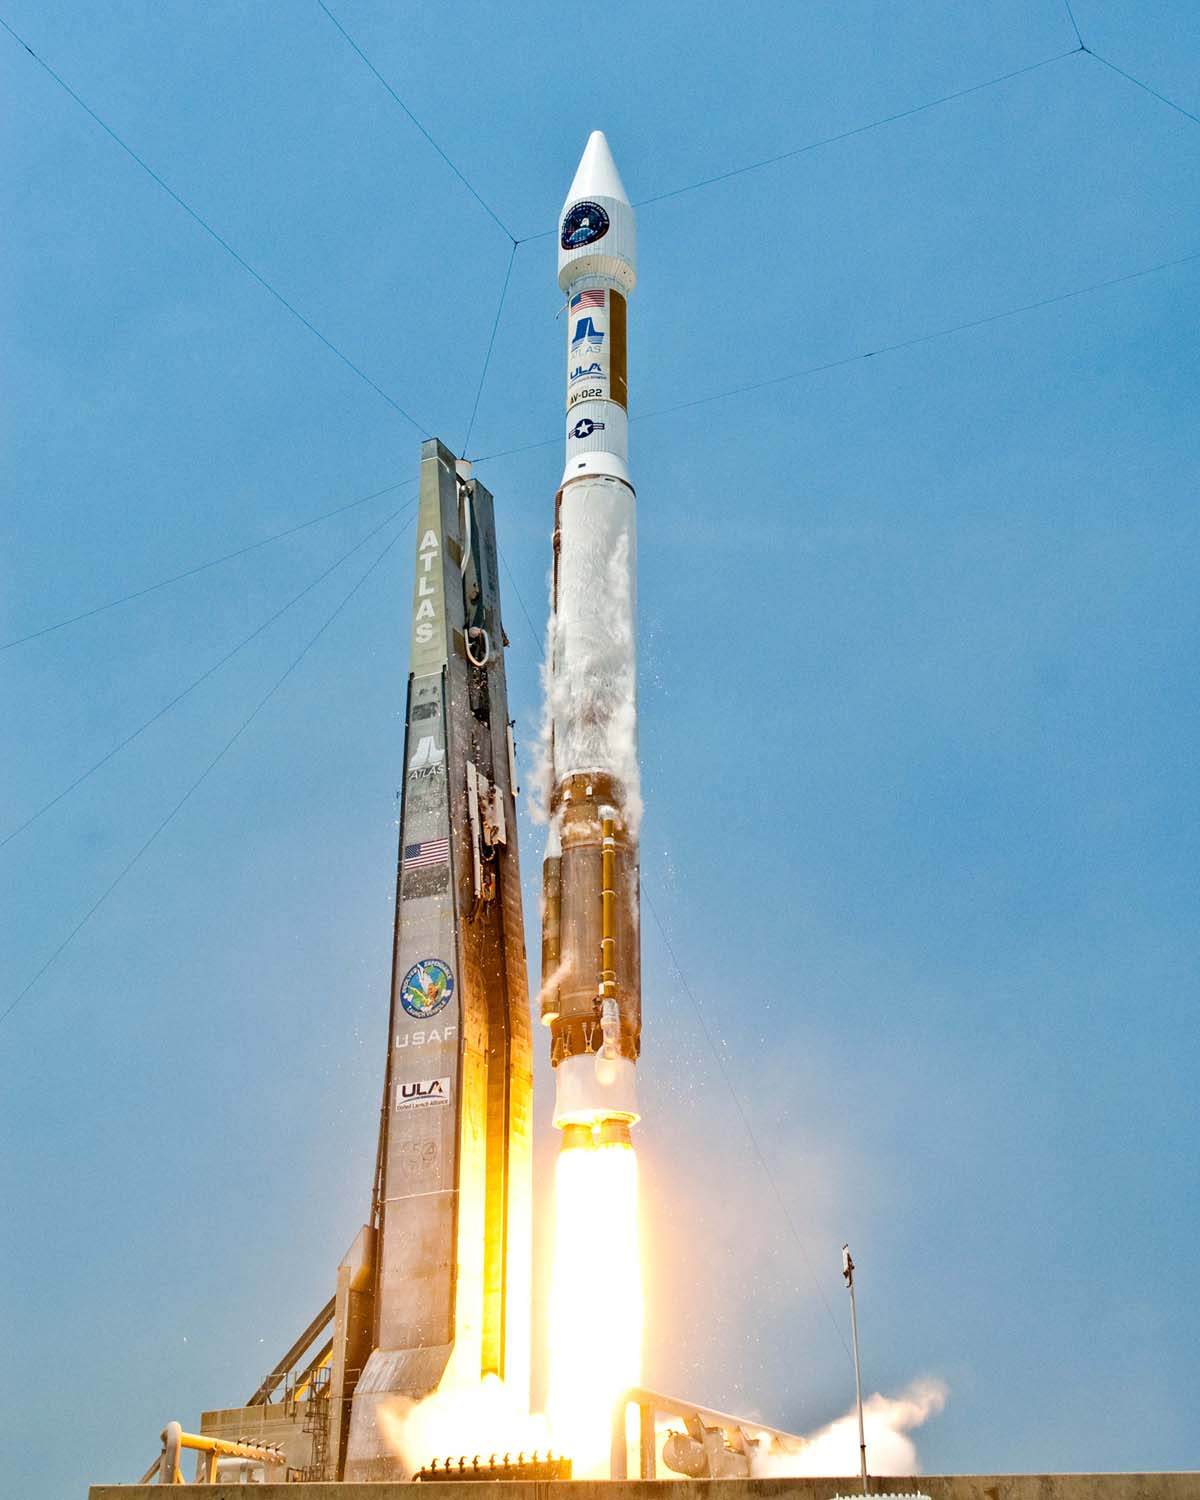 U.S. Military Launches New Missile Warning Satellite Into Space